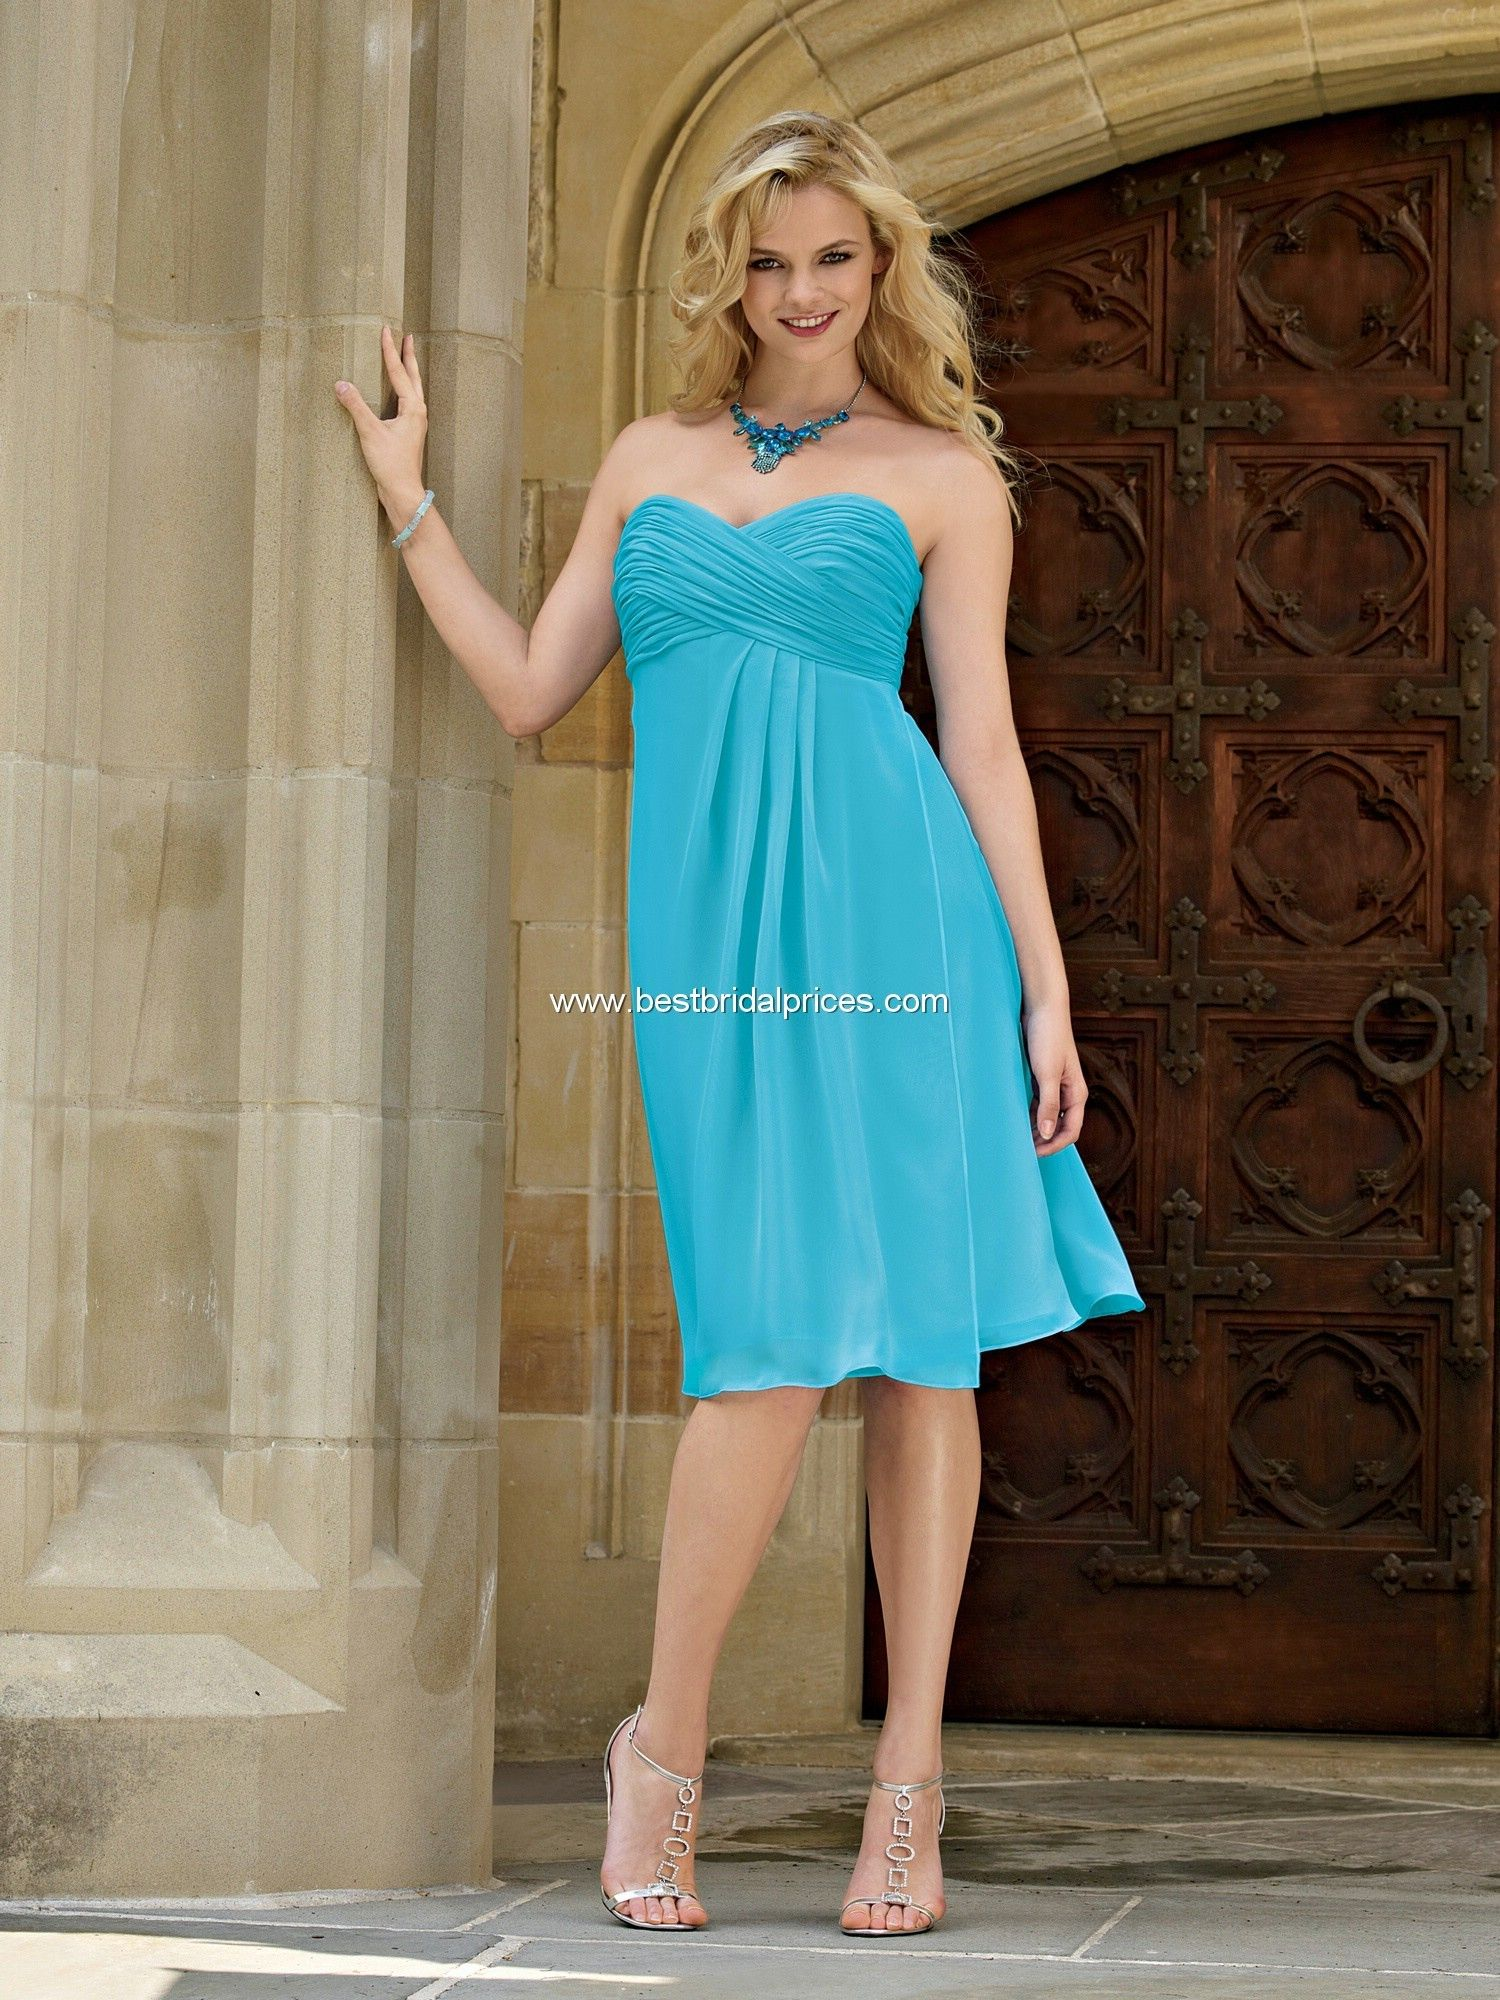 Jordan Bridesmaid Dresses - Style 147 [147] - $124.20 : Wedding ...